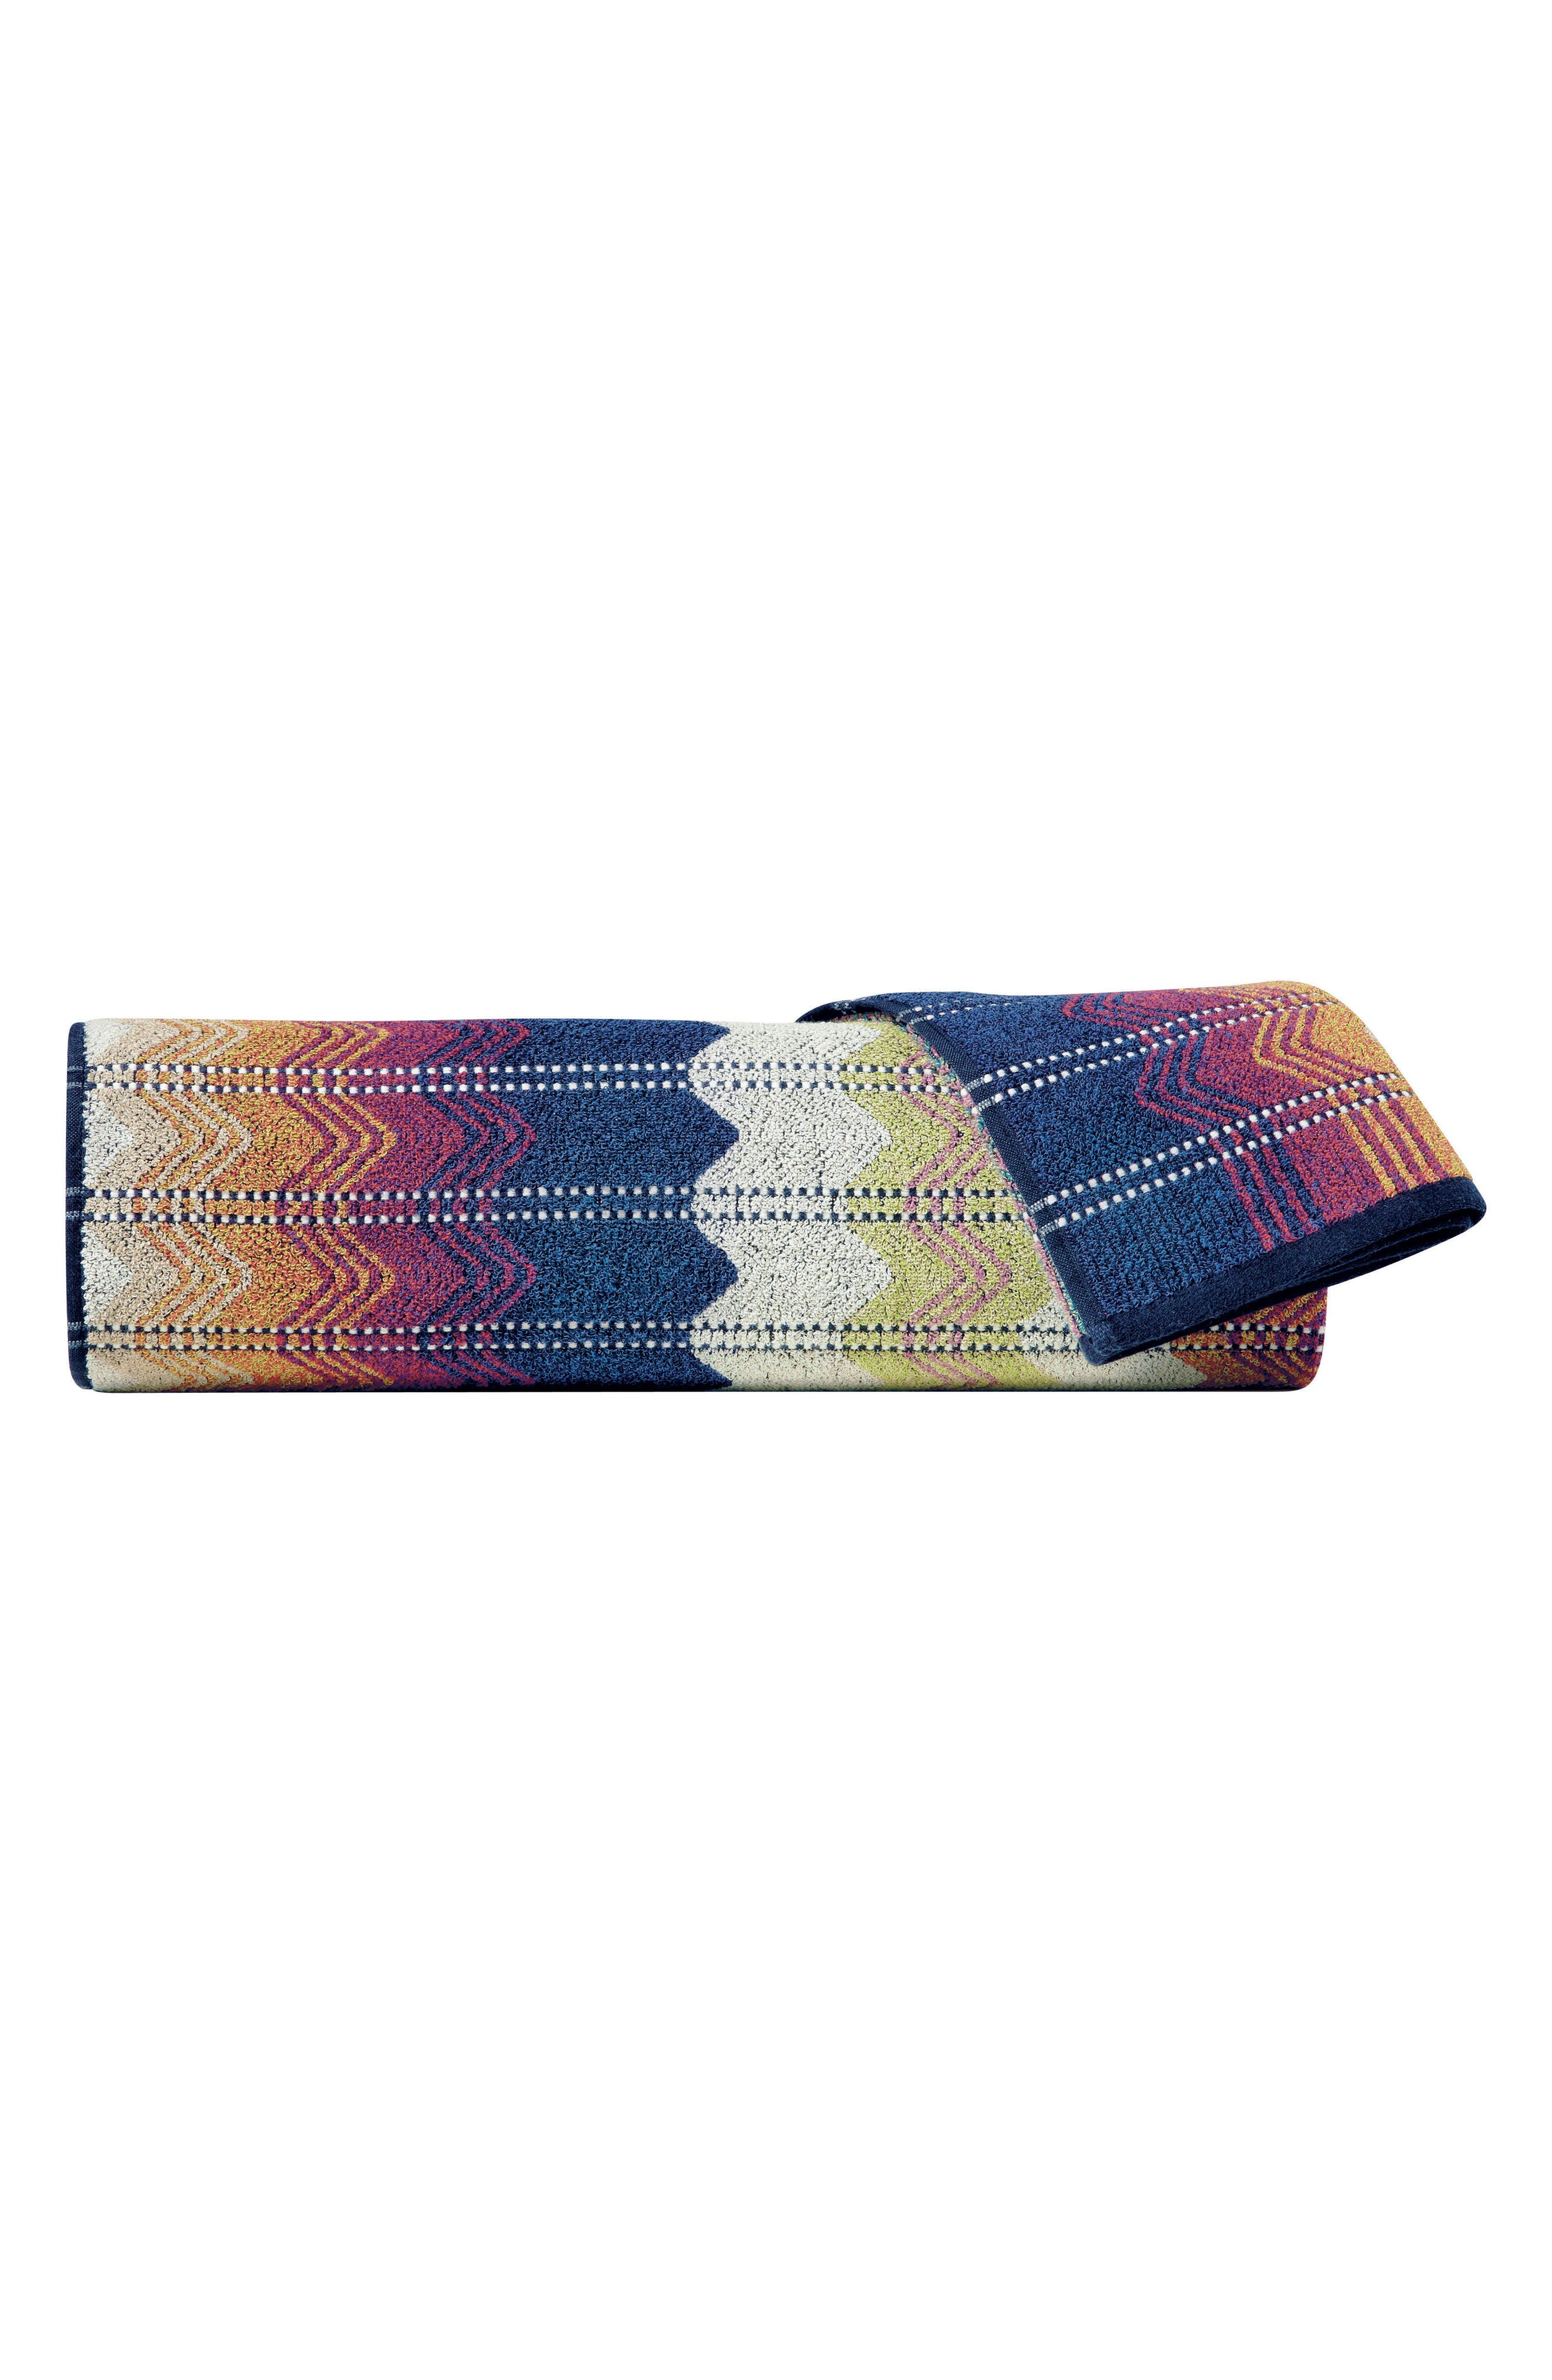 Missoni Travis Bath Sheet,                         Main,                         color, Multi Color